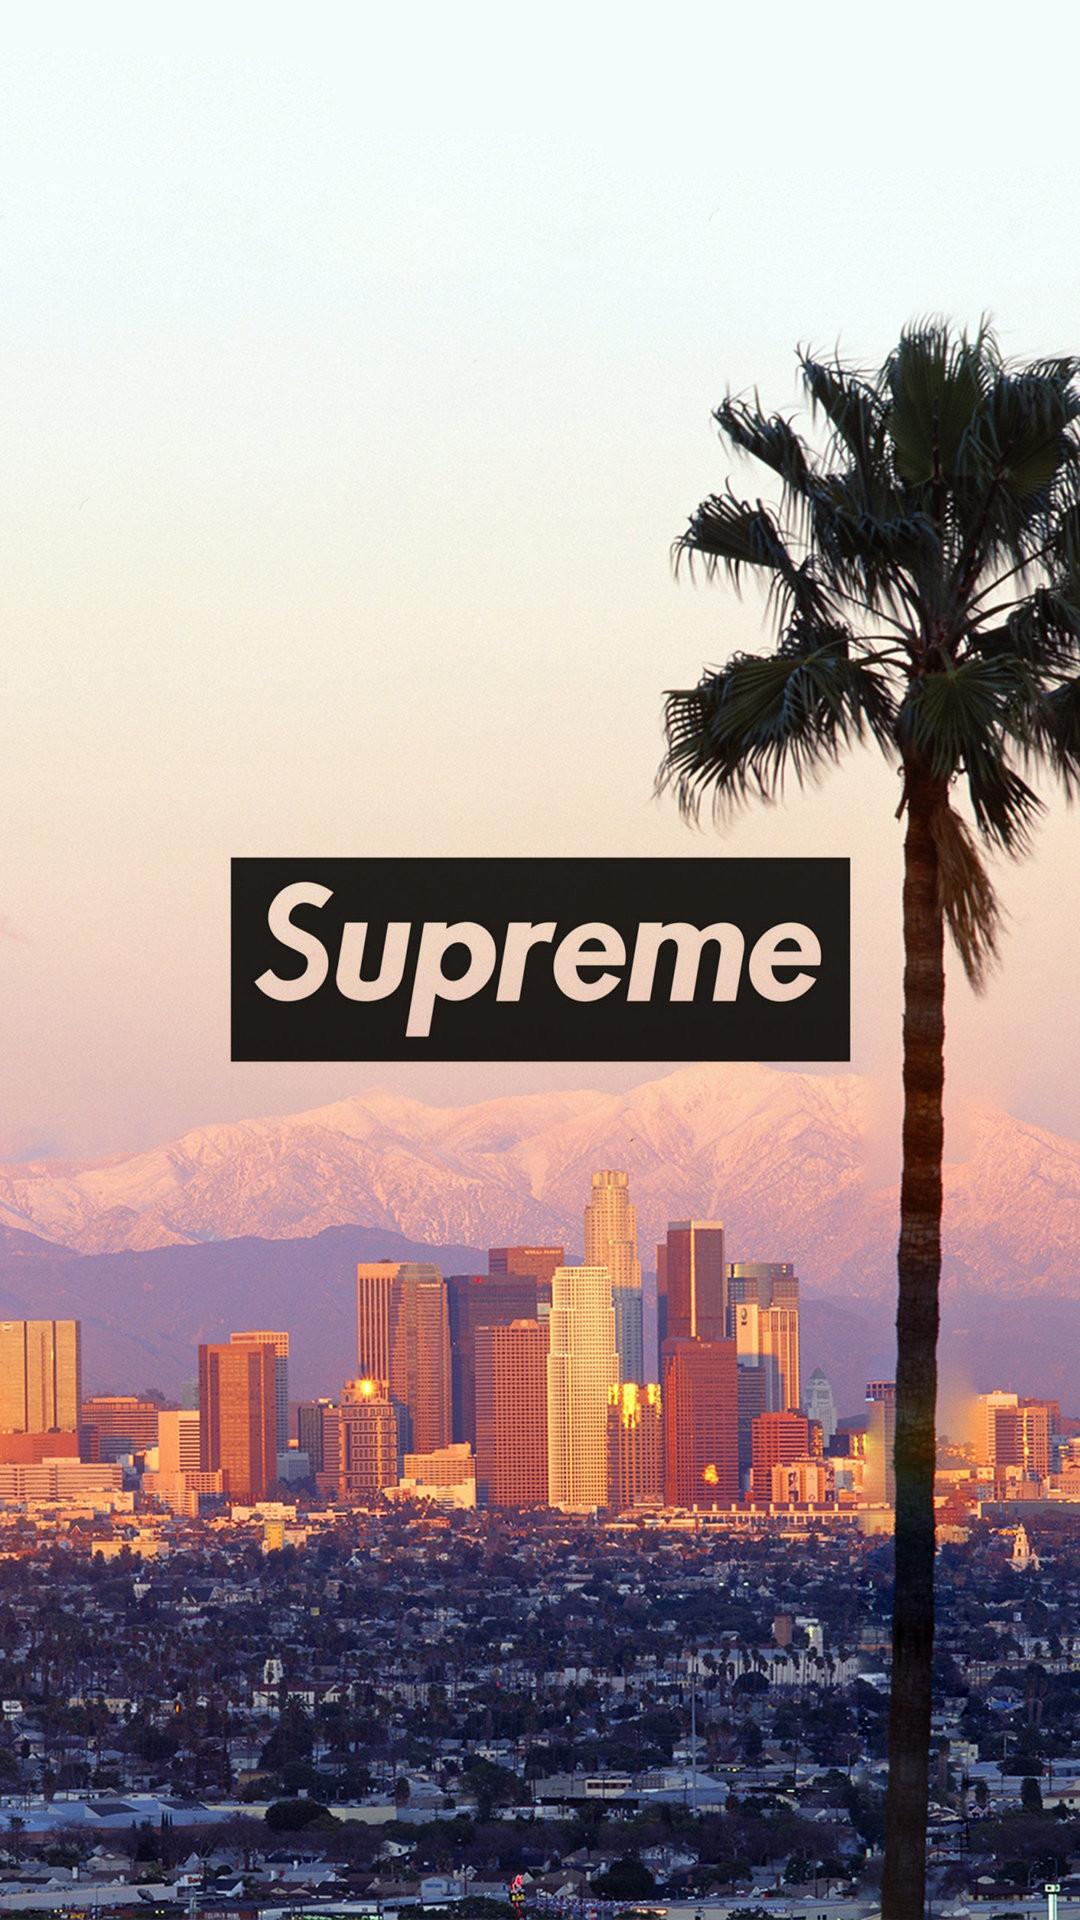 Supreme Wallpaper 73 images 1080x1920